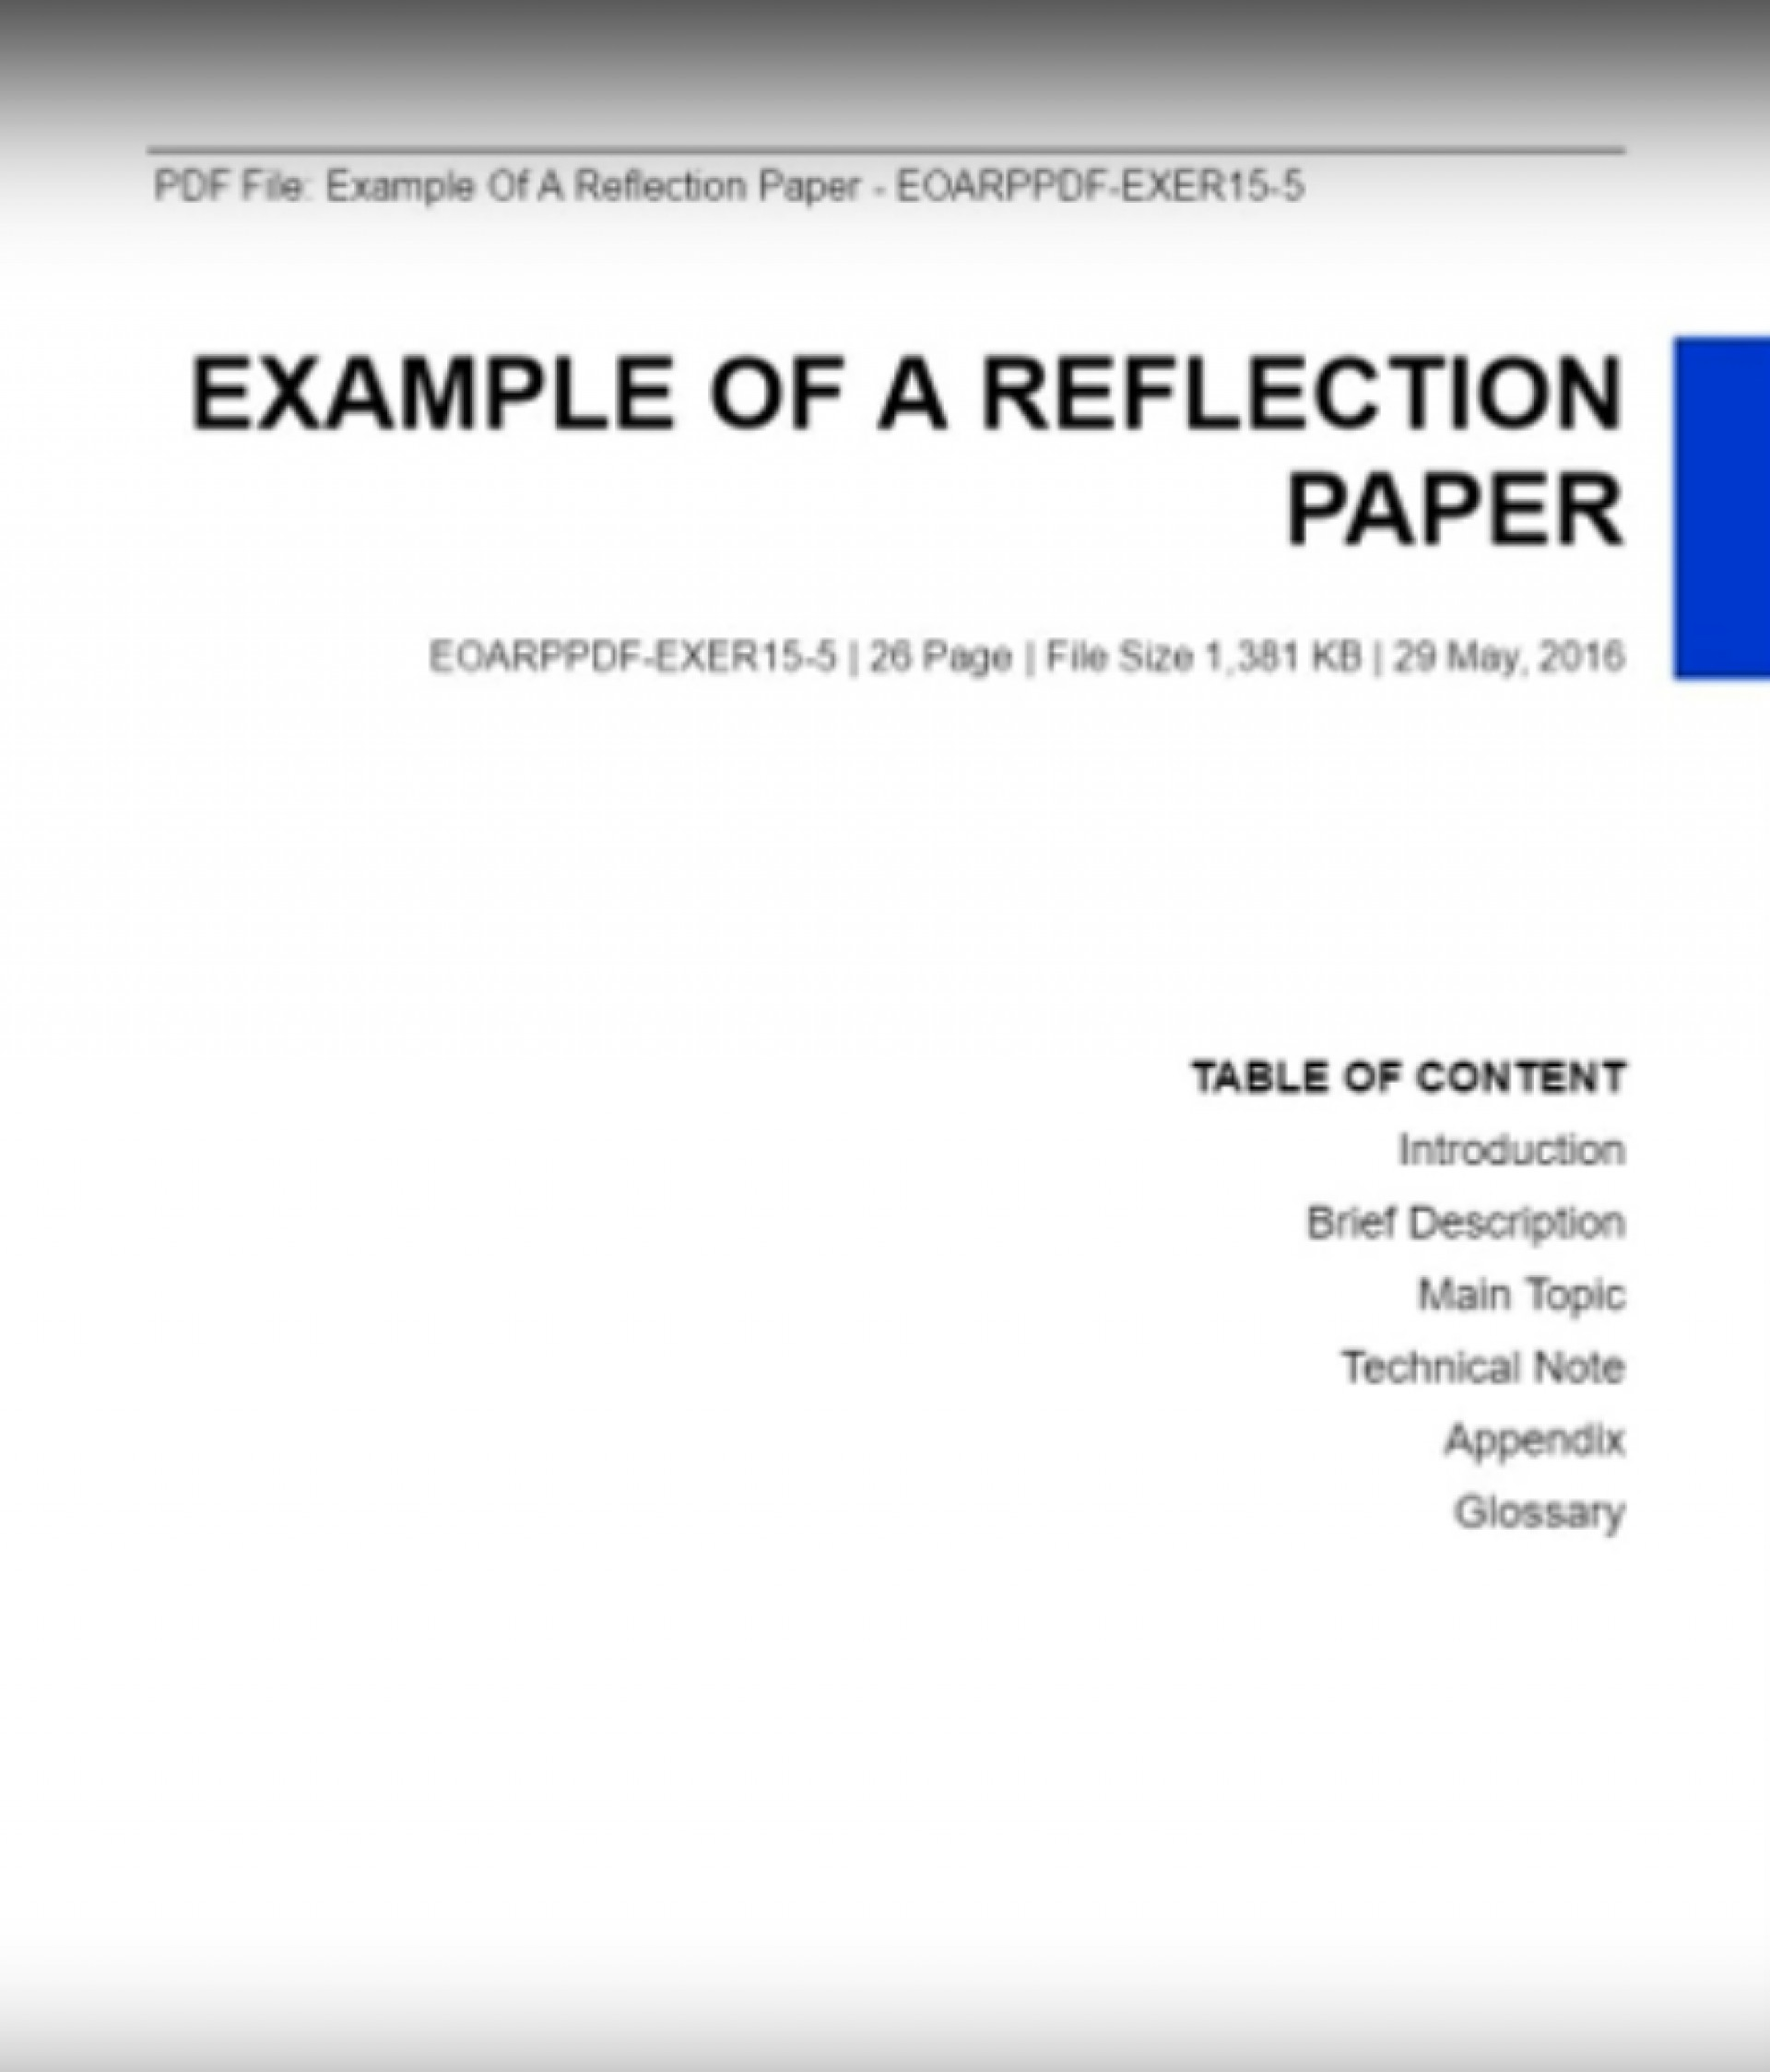 013 Reflective Essay Example Reflection Paper Unforgettable Examples About Life Pdf High School Students Apa 1920